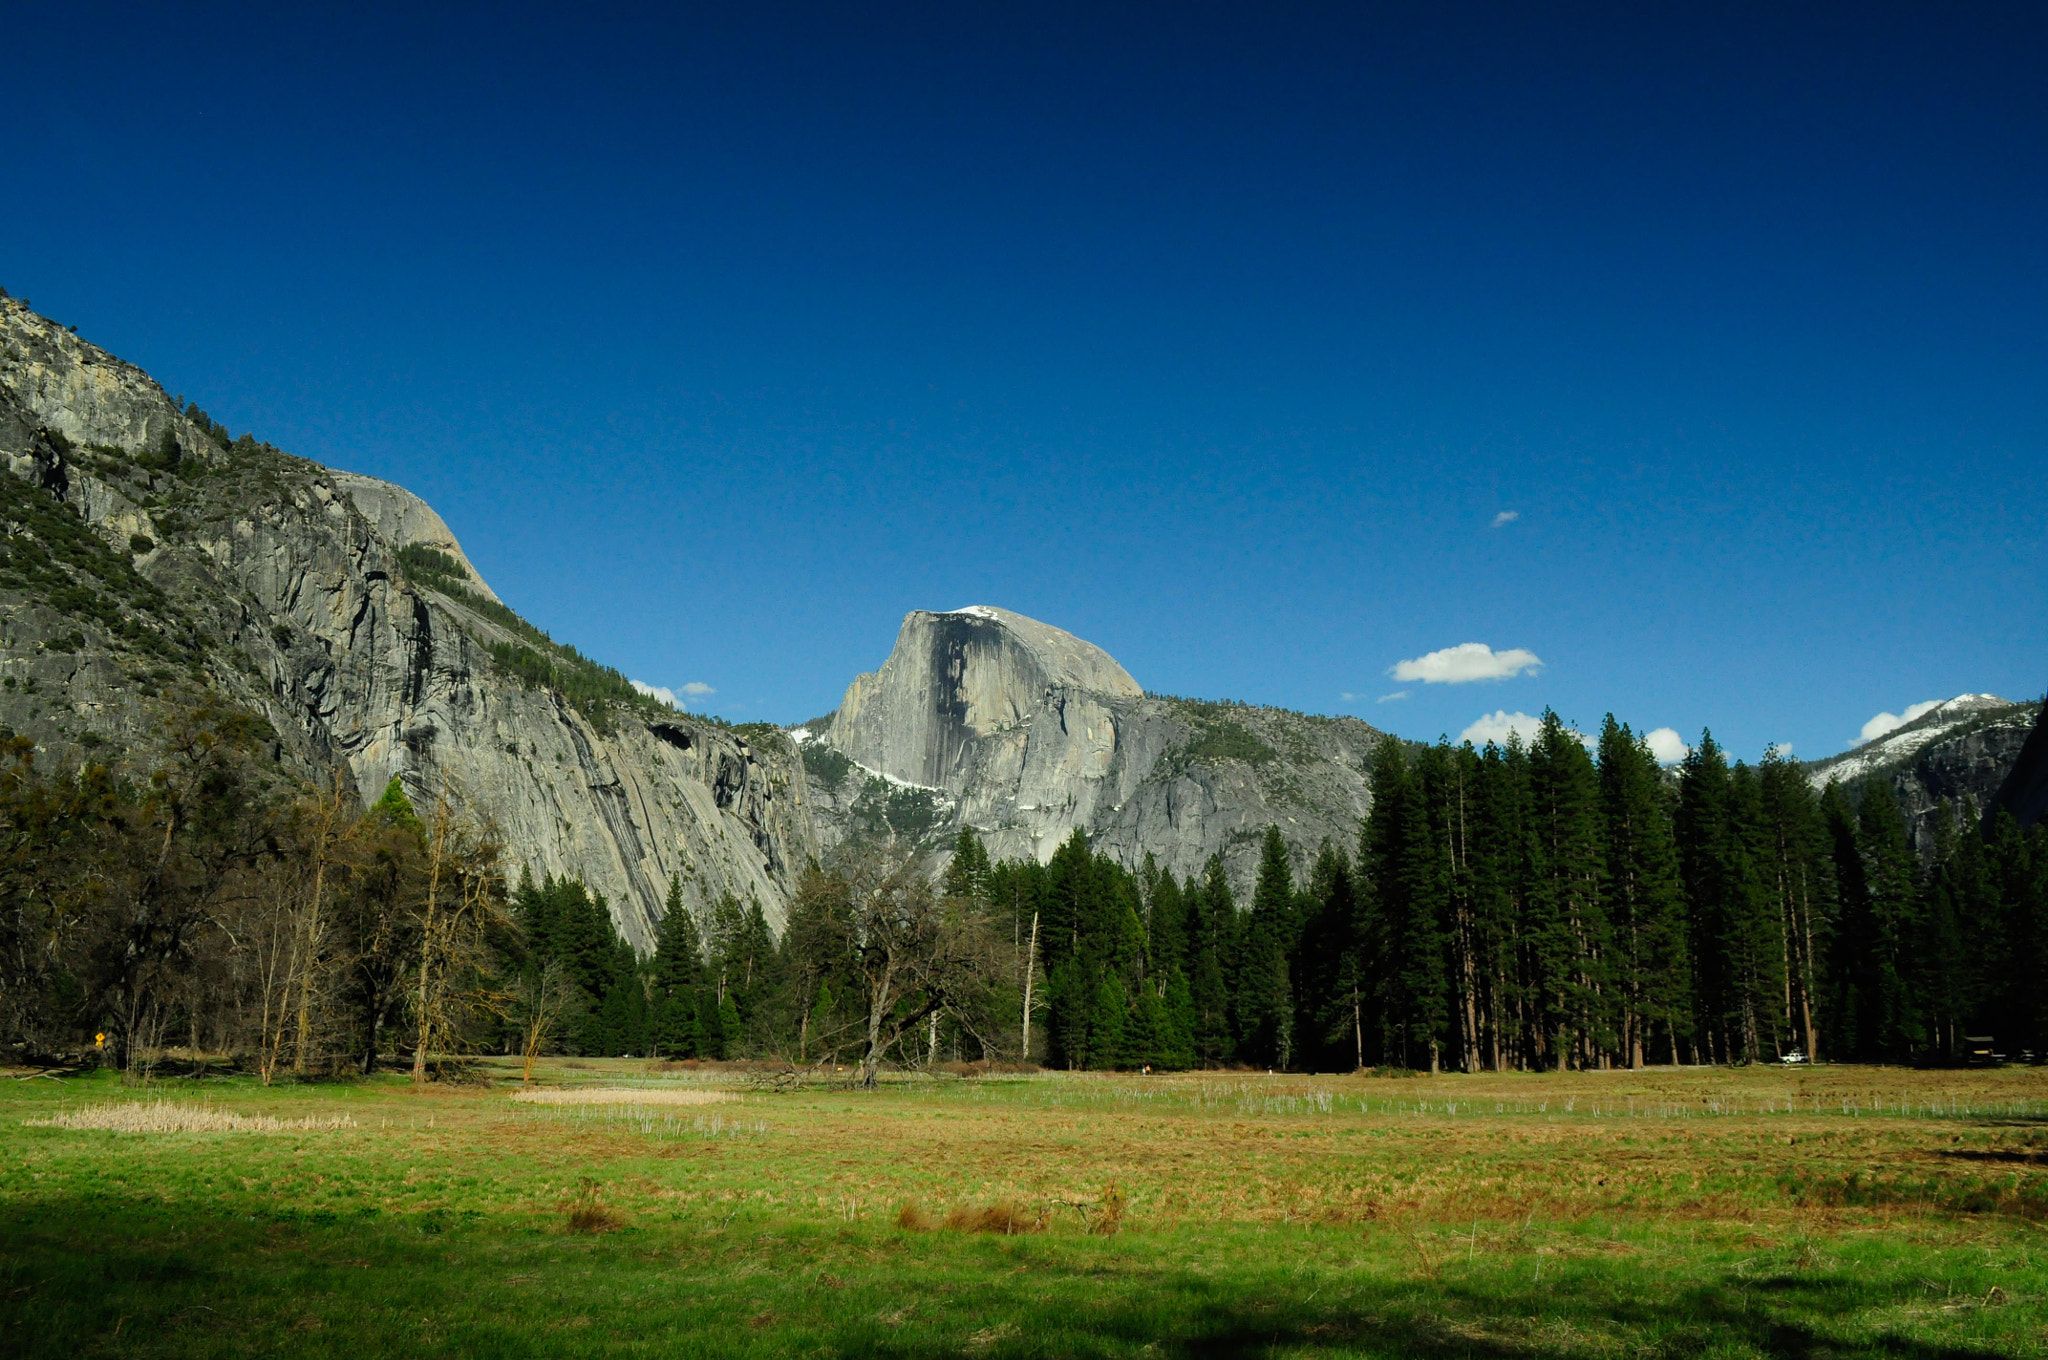 Photograph Half Dome, Yosemite by N Simpson on 500px